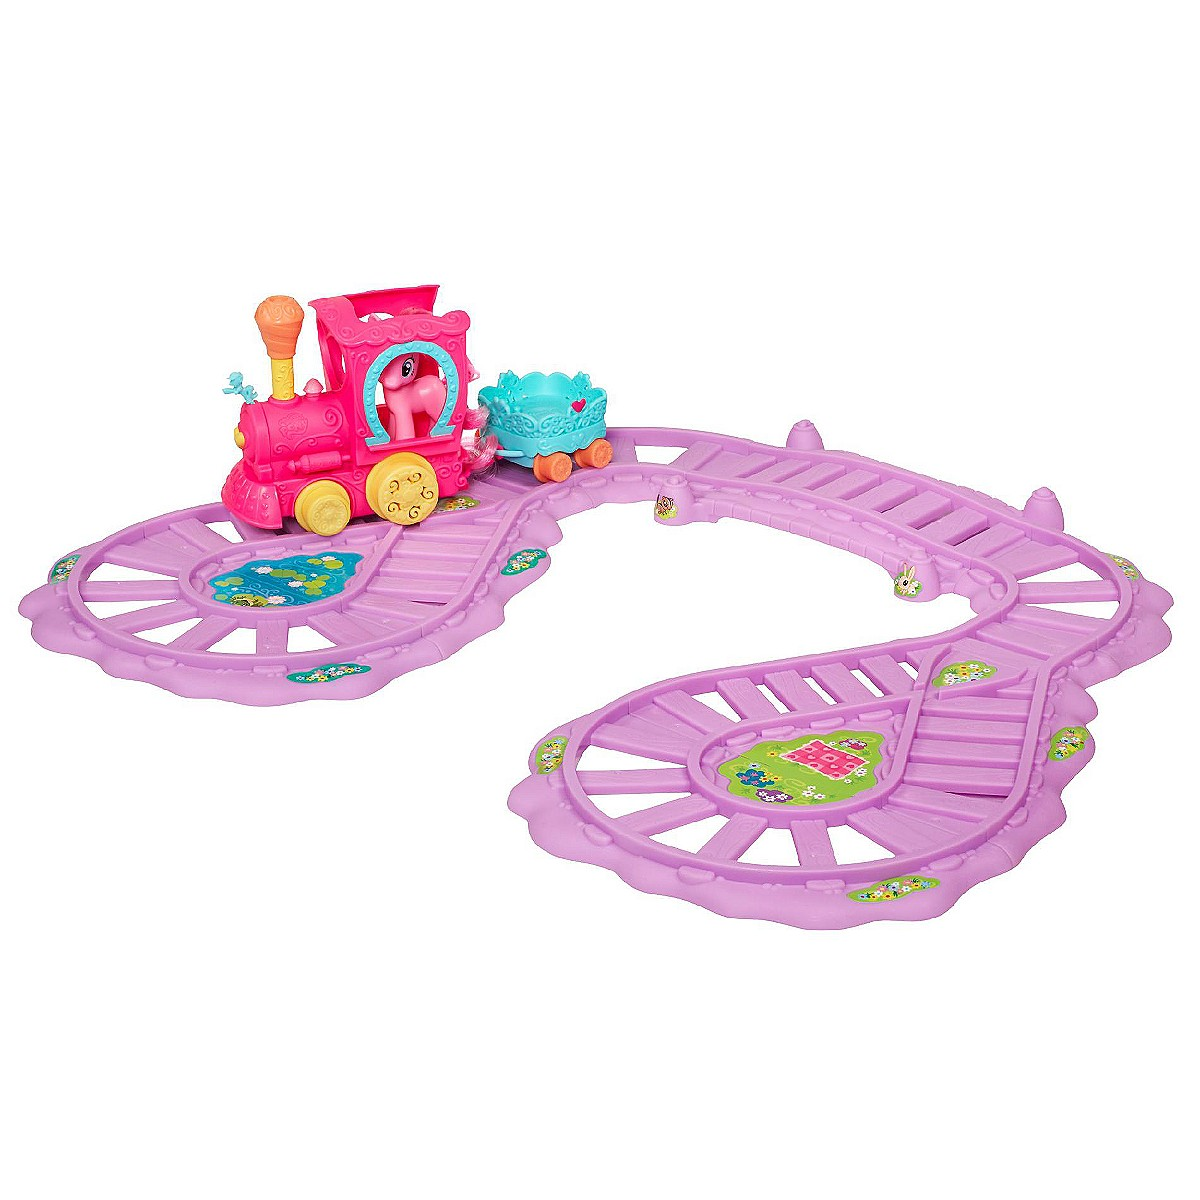 Hasbro Train Set : G my little pony reference pinkie pie friendship is magic